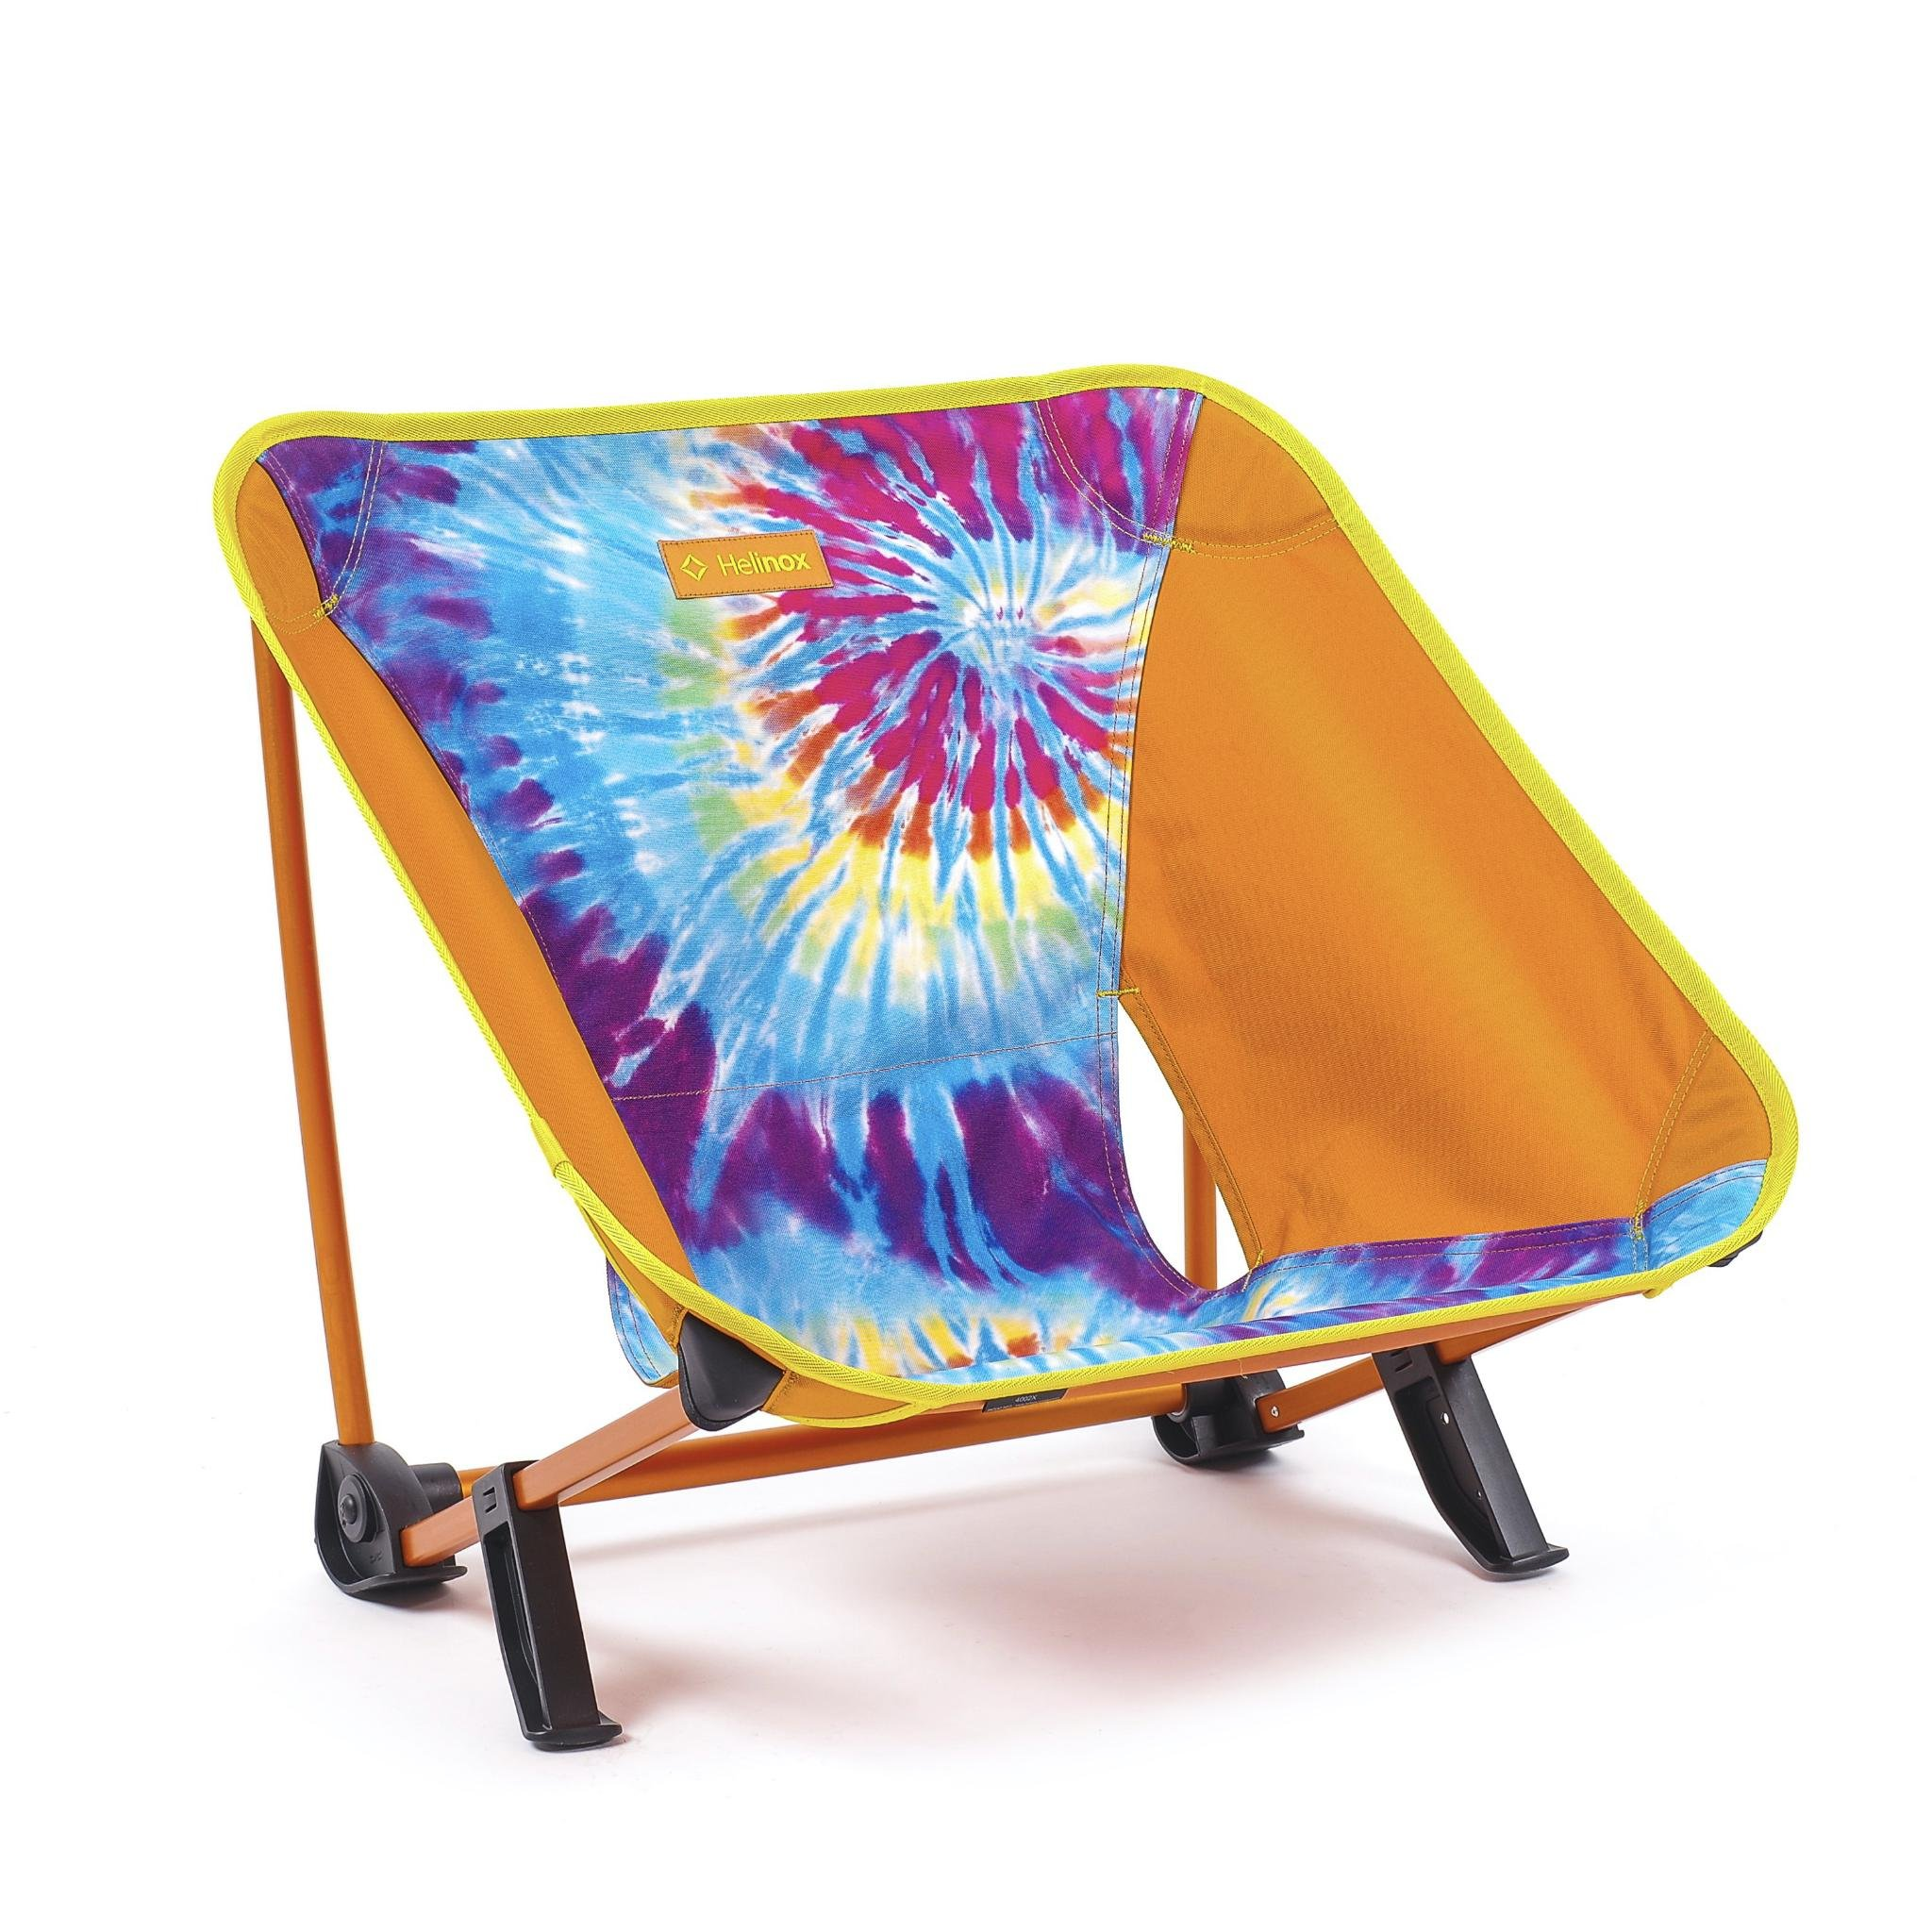 INCLINED FESTIVAL CHAIR - TIE